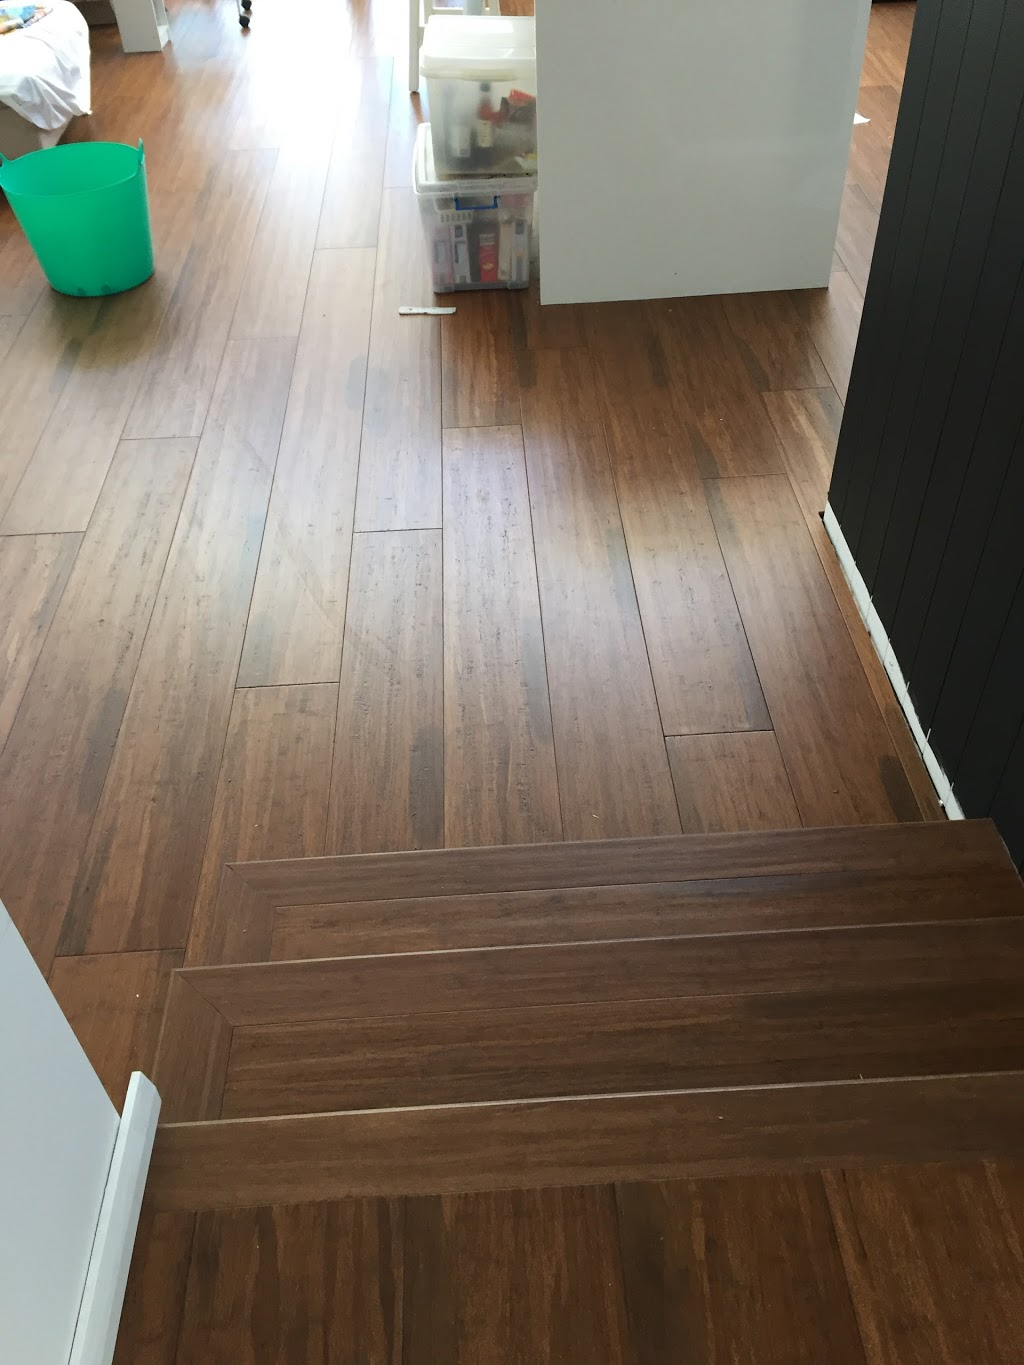 Fantastic Timber Floors Pty Ltd.   home goods store   87 Princes Hwy, Fairy Meadow NSW 2519, Australia   0404317563 OR +61 404 317 563